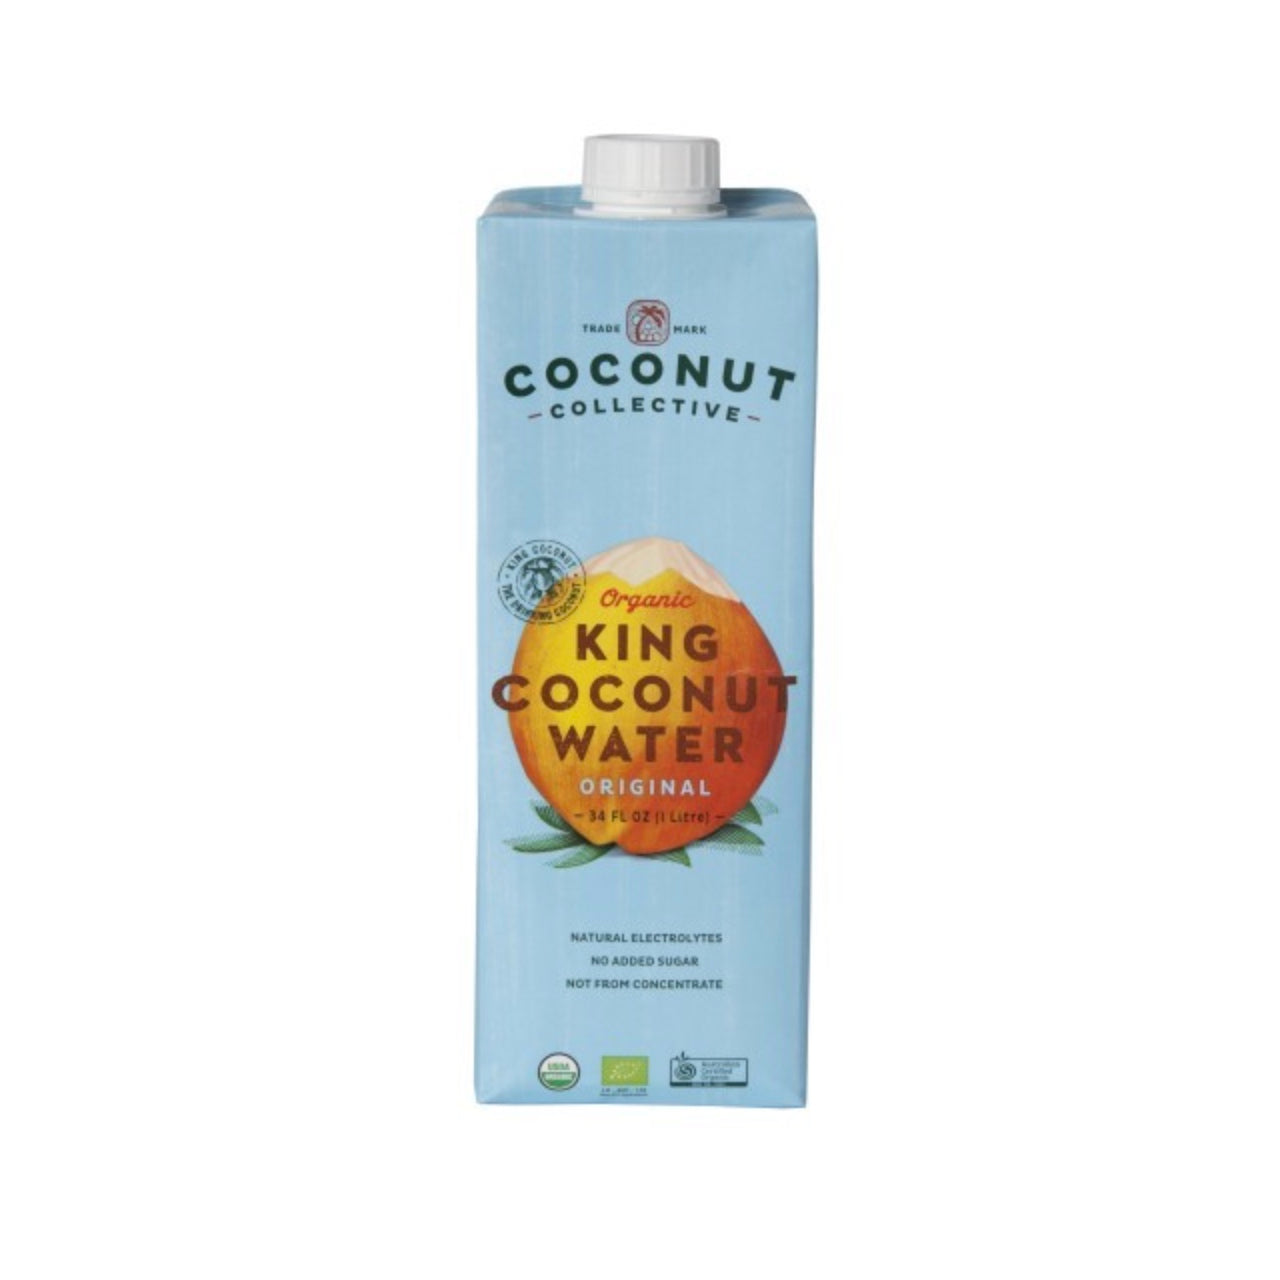 King Coconut Water - Best Before 3rd September 2018